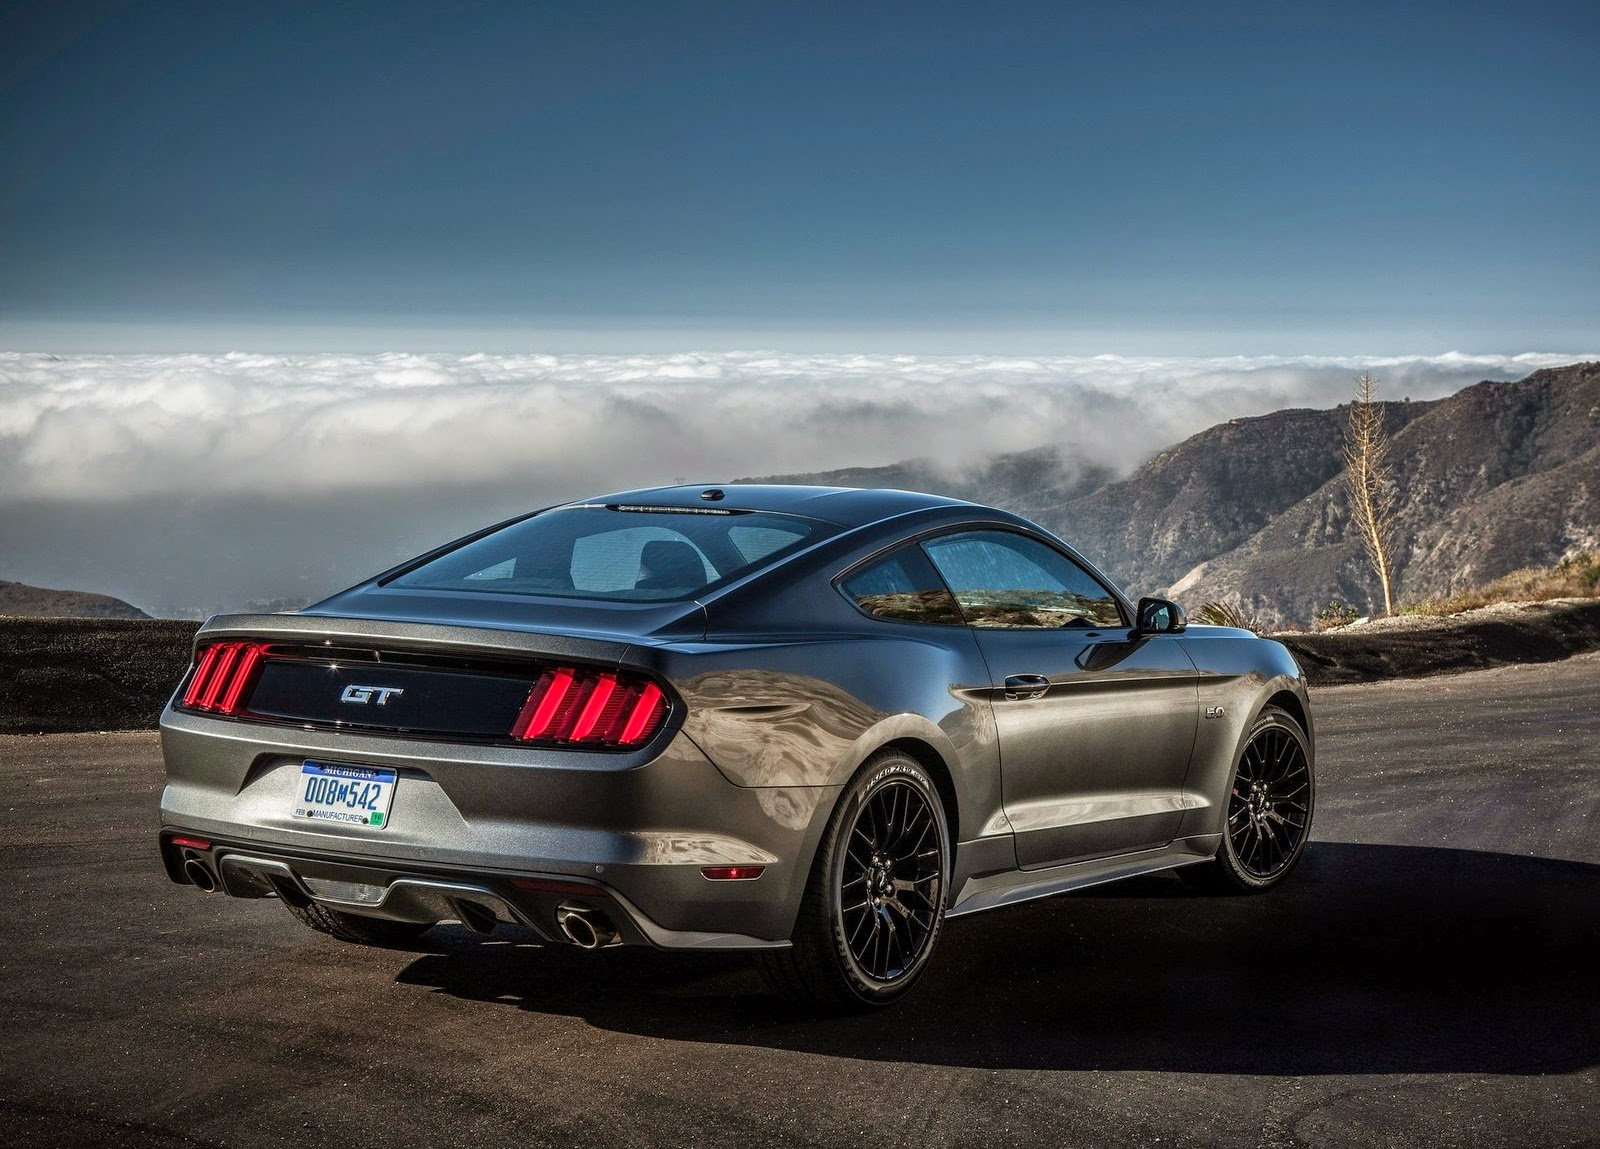 Ford Mustang GT Awesome HD Car